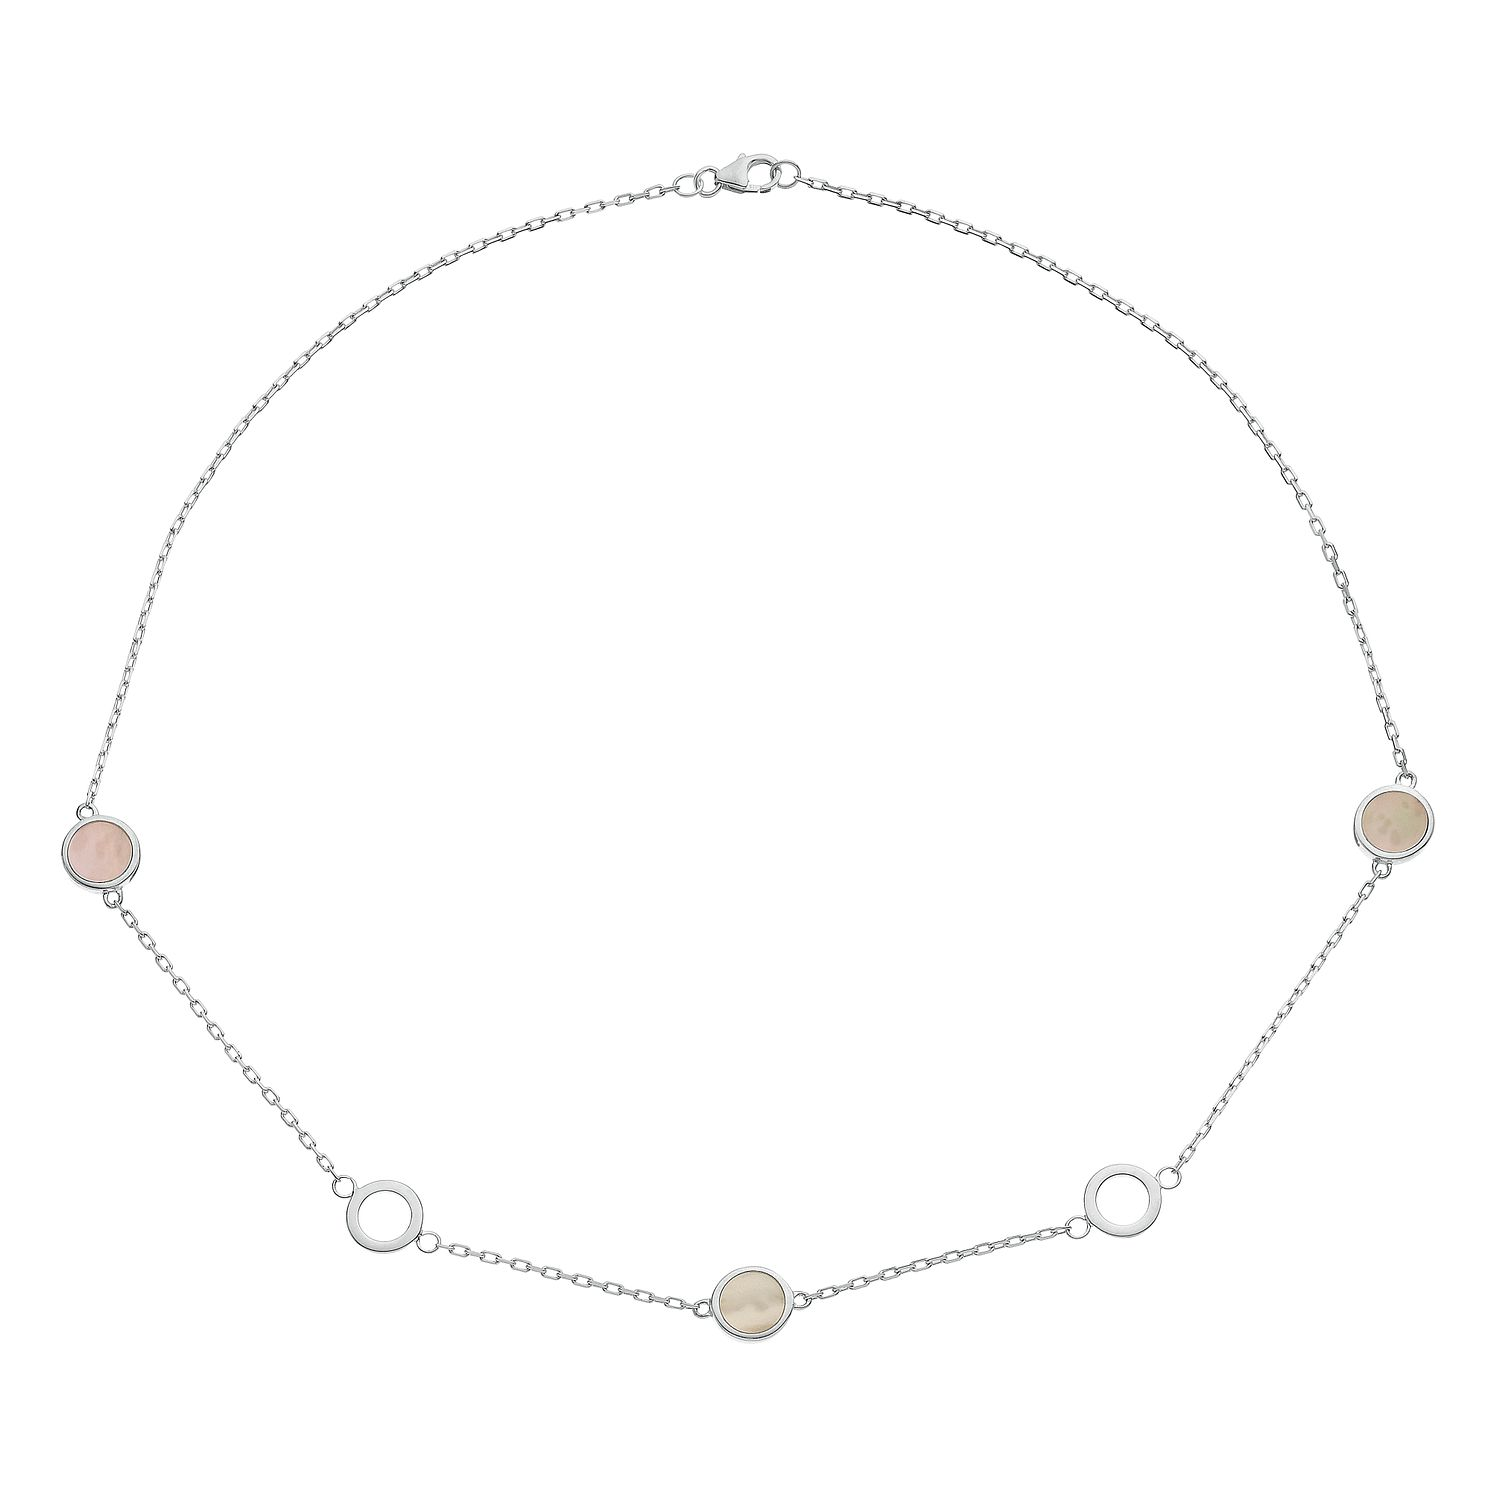 Silver Mother Of Pearl Station Chain Necklace - Product number 3043495